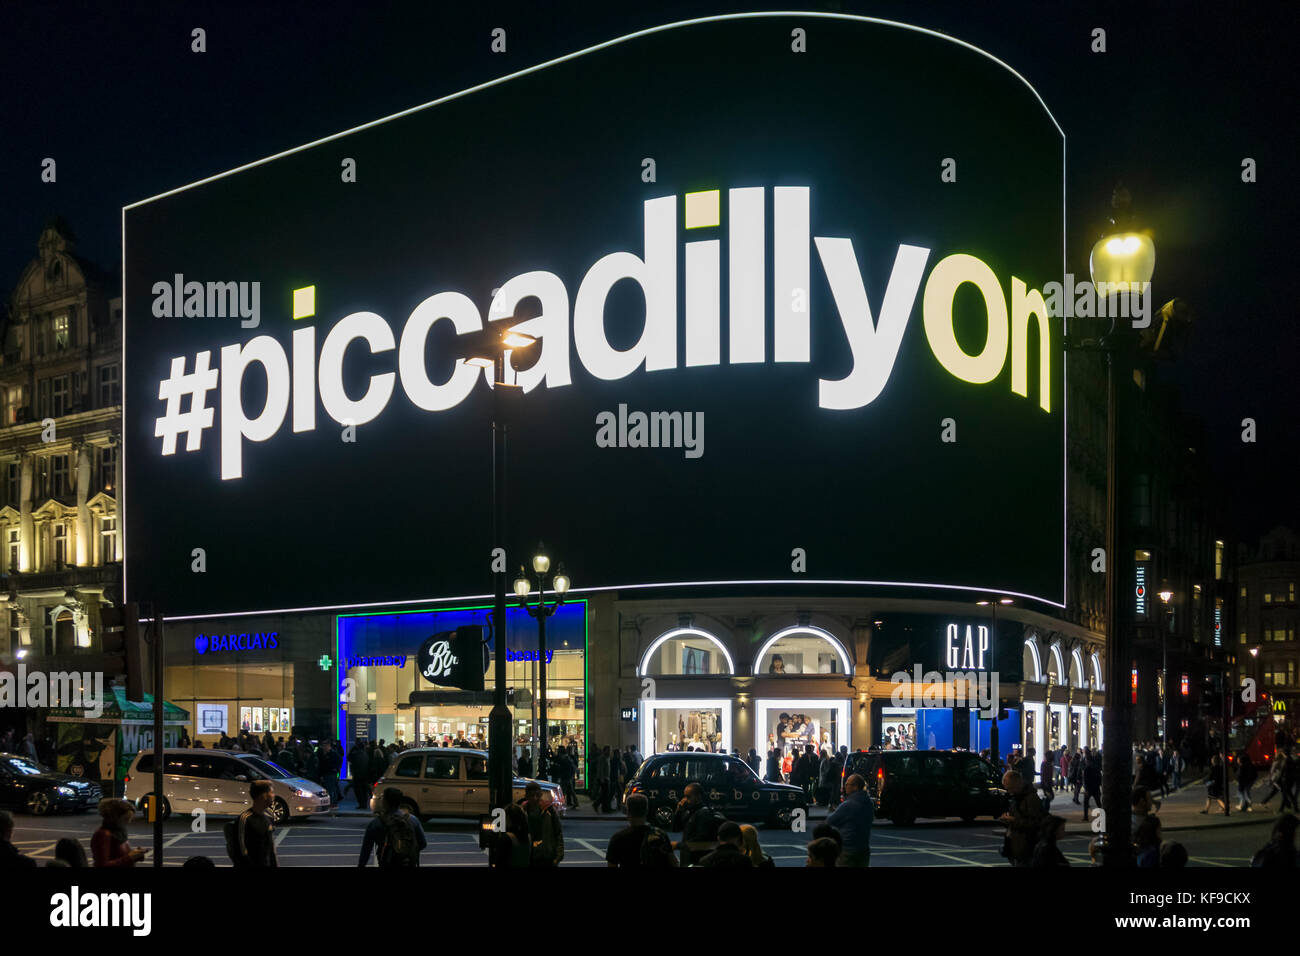 The Piccadillyon advertising screen at Piccadilly Circus in London's West End is the largest digital LED 4K - Stock Image